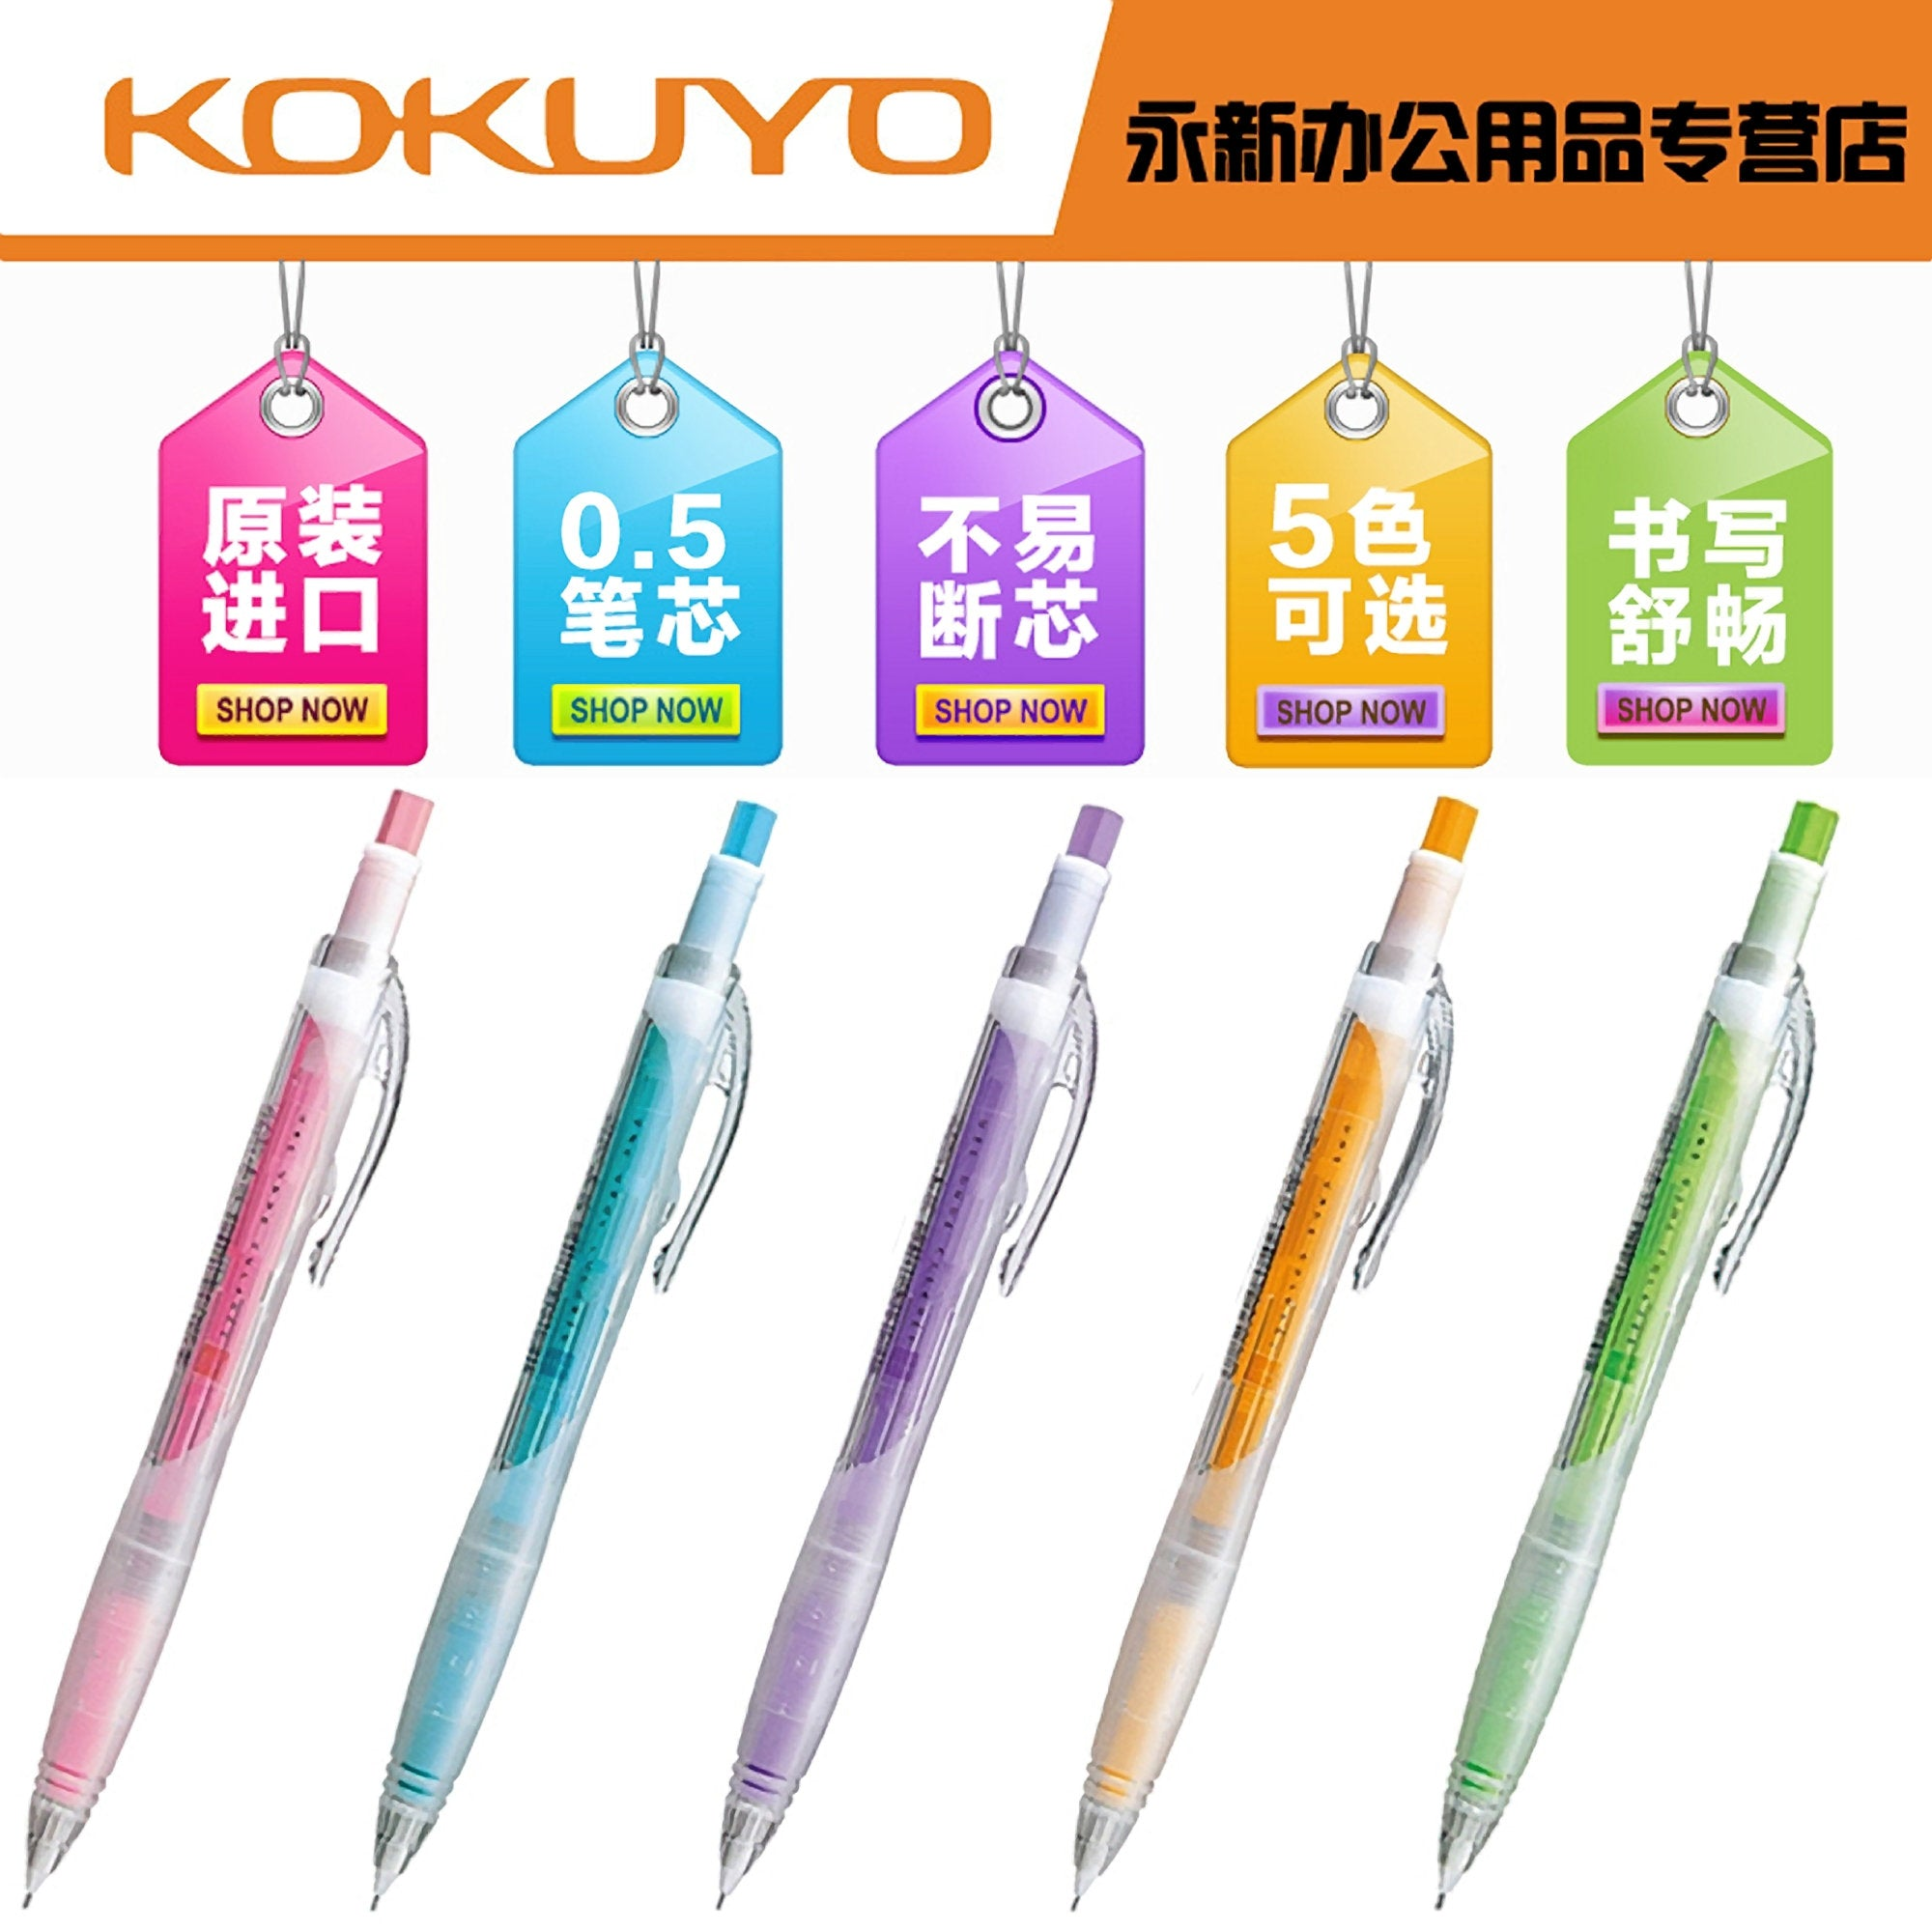 Kokuyo PINK Coloree Mechanical Pencil | 0.5 mm - The Stationery Life!